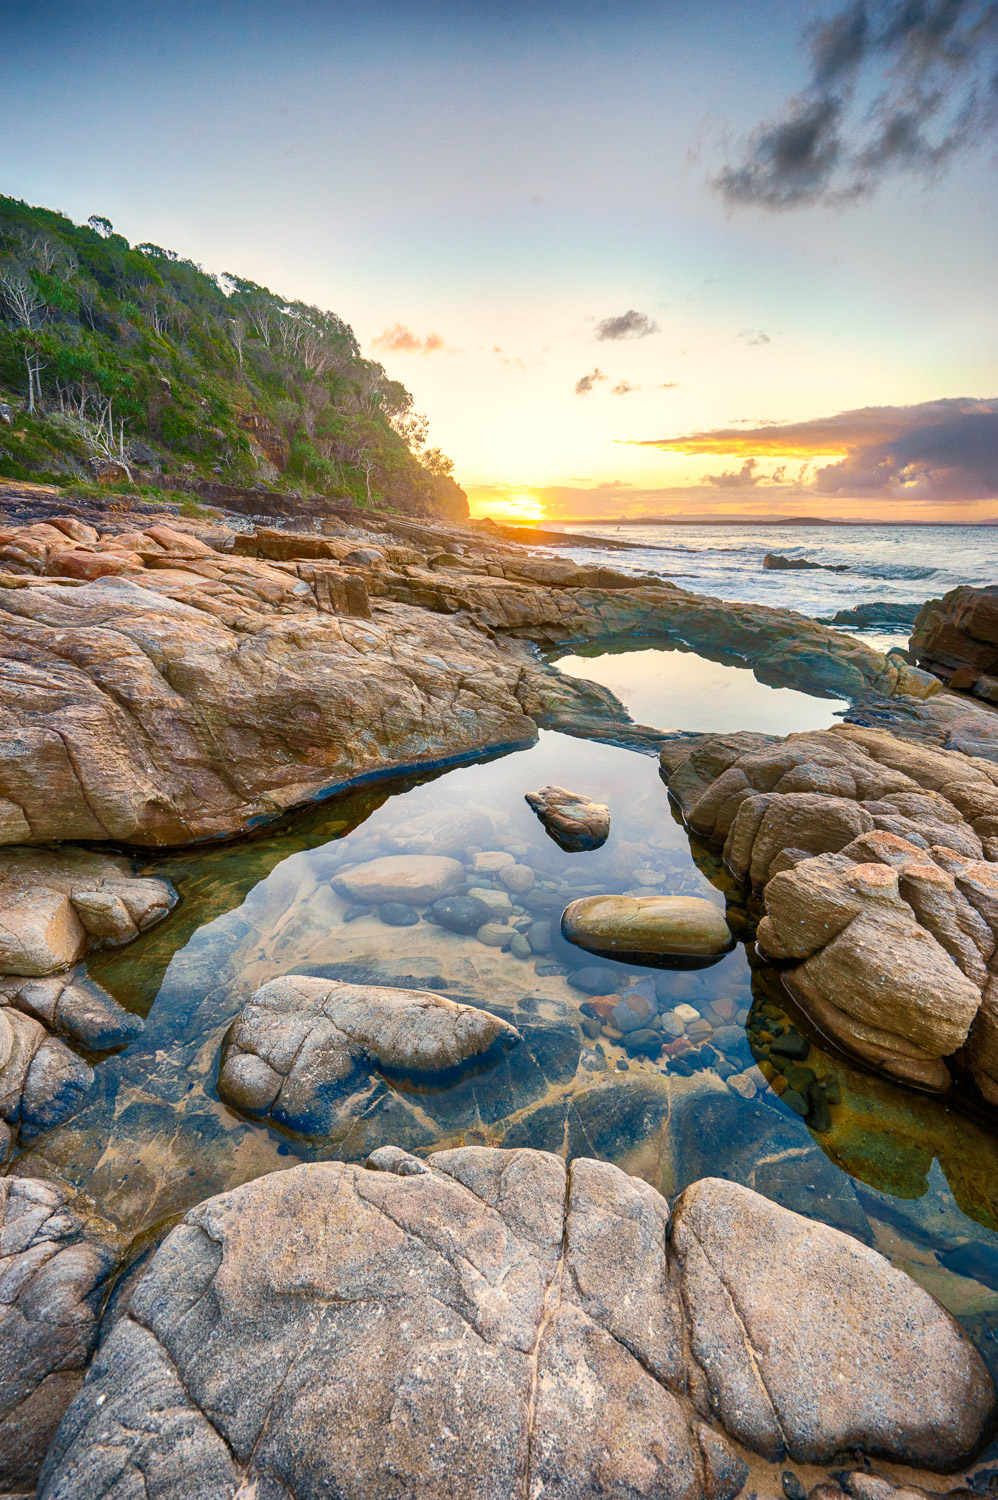 How to Work the Scene to Get More Great Photos - tidal pool at sunset